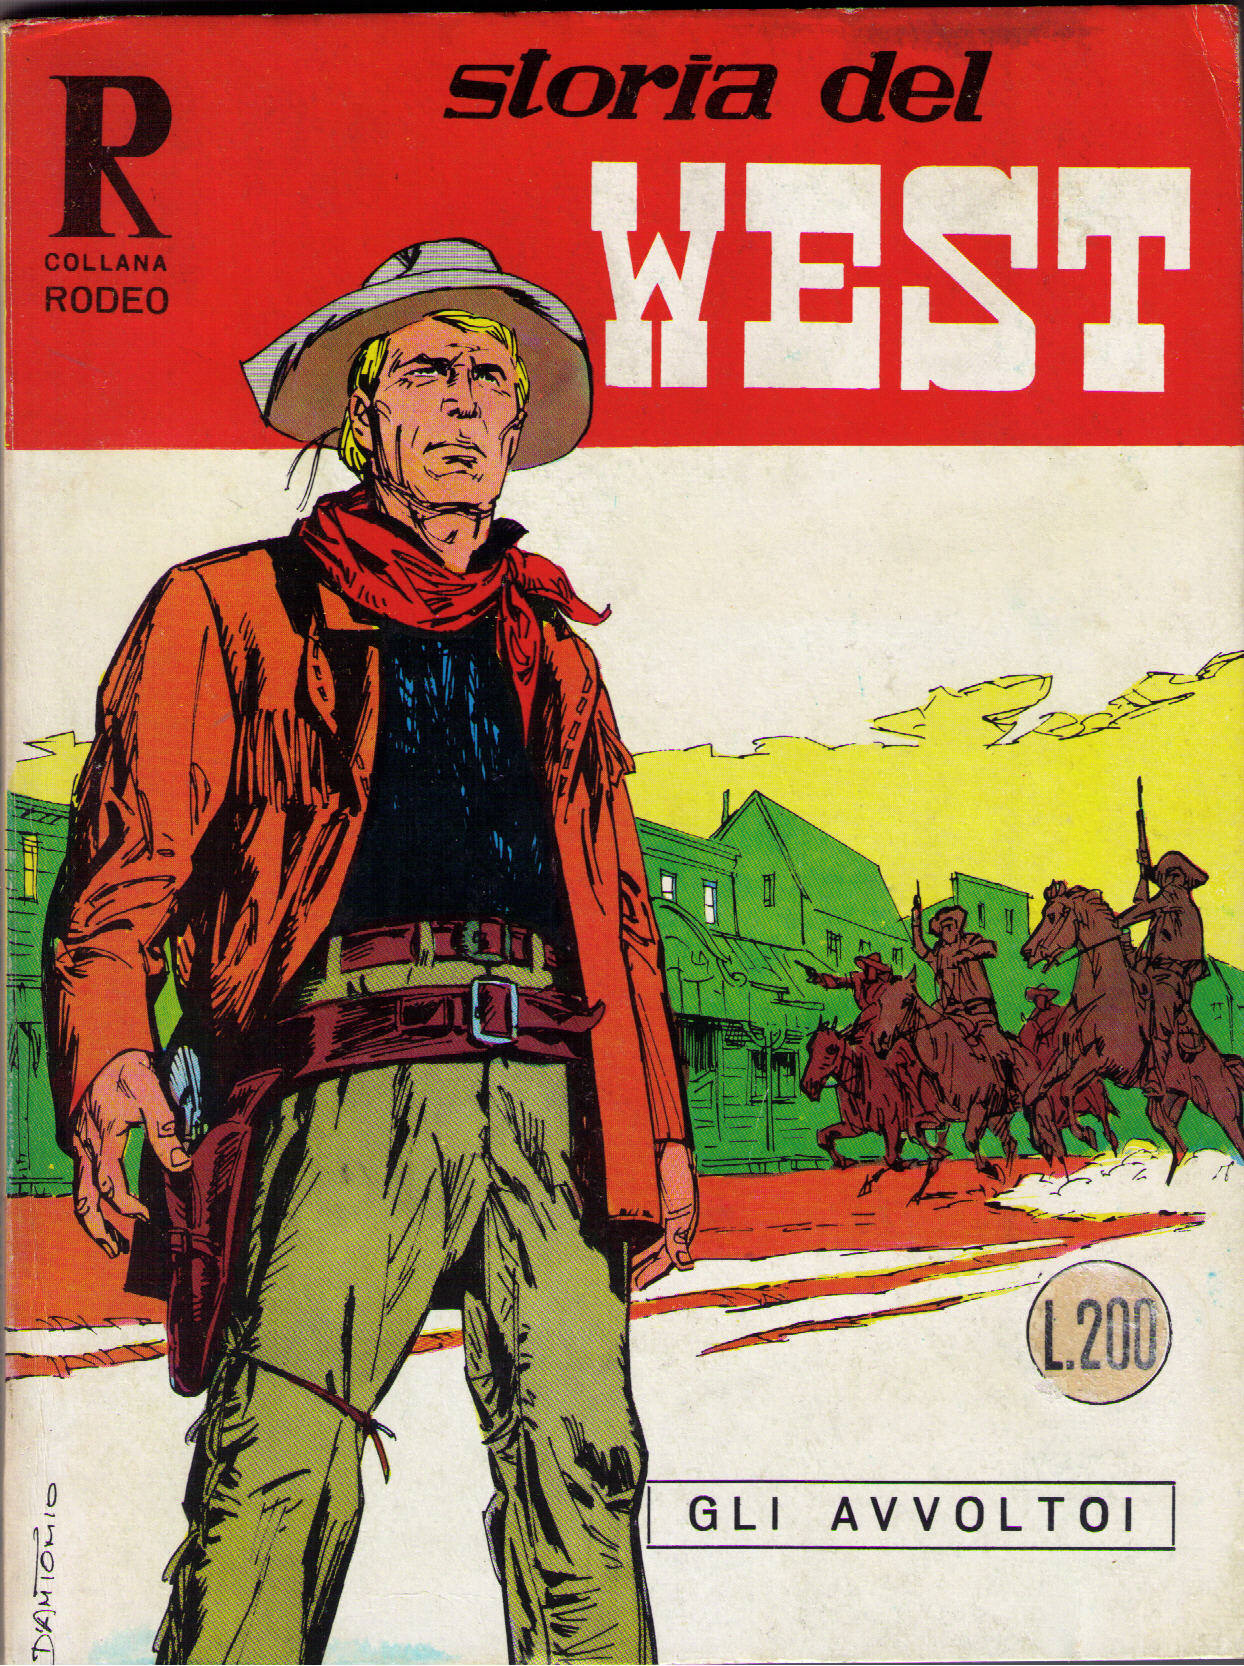 Storia del West n.27 (Collana Rodeo n.60)